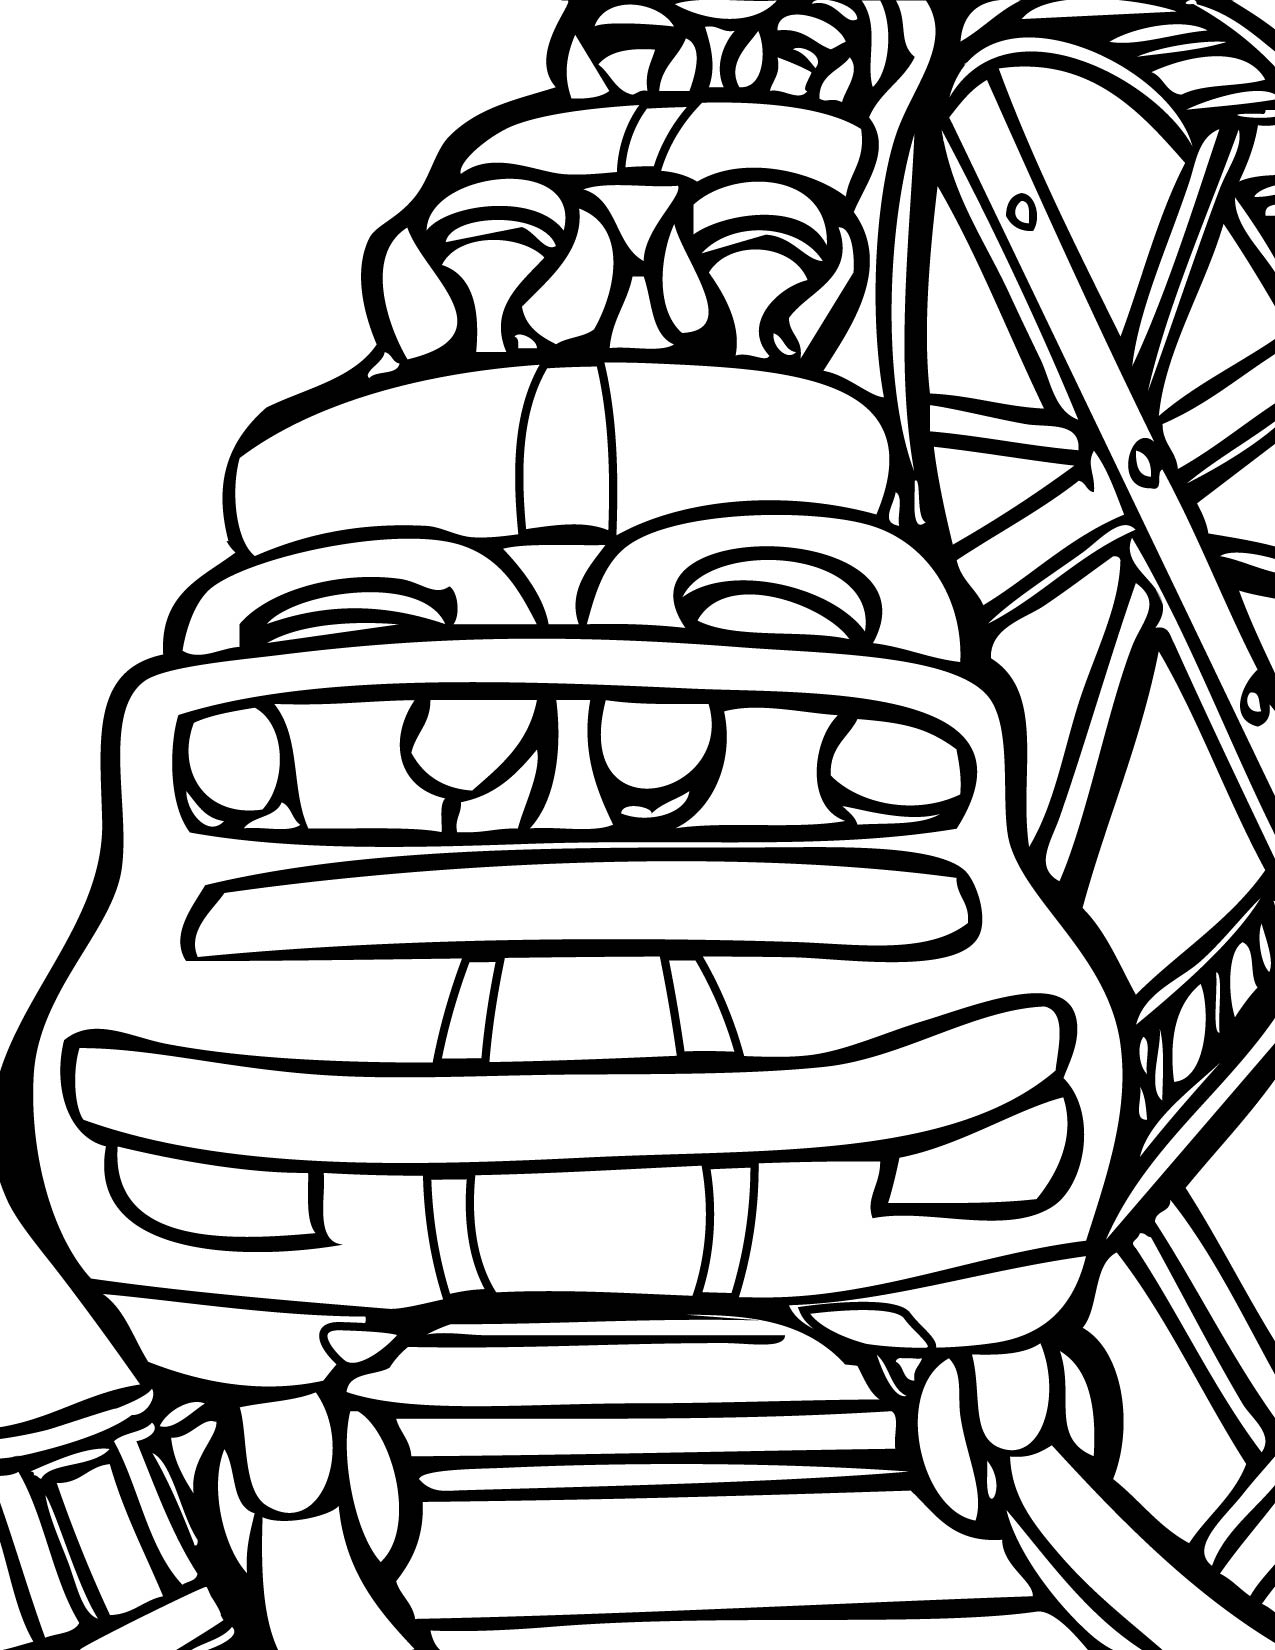 Drawing Of A Roller Coaster